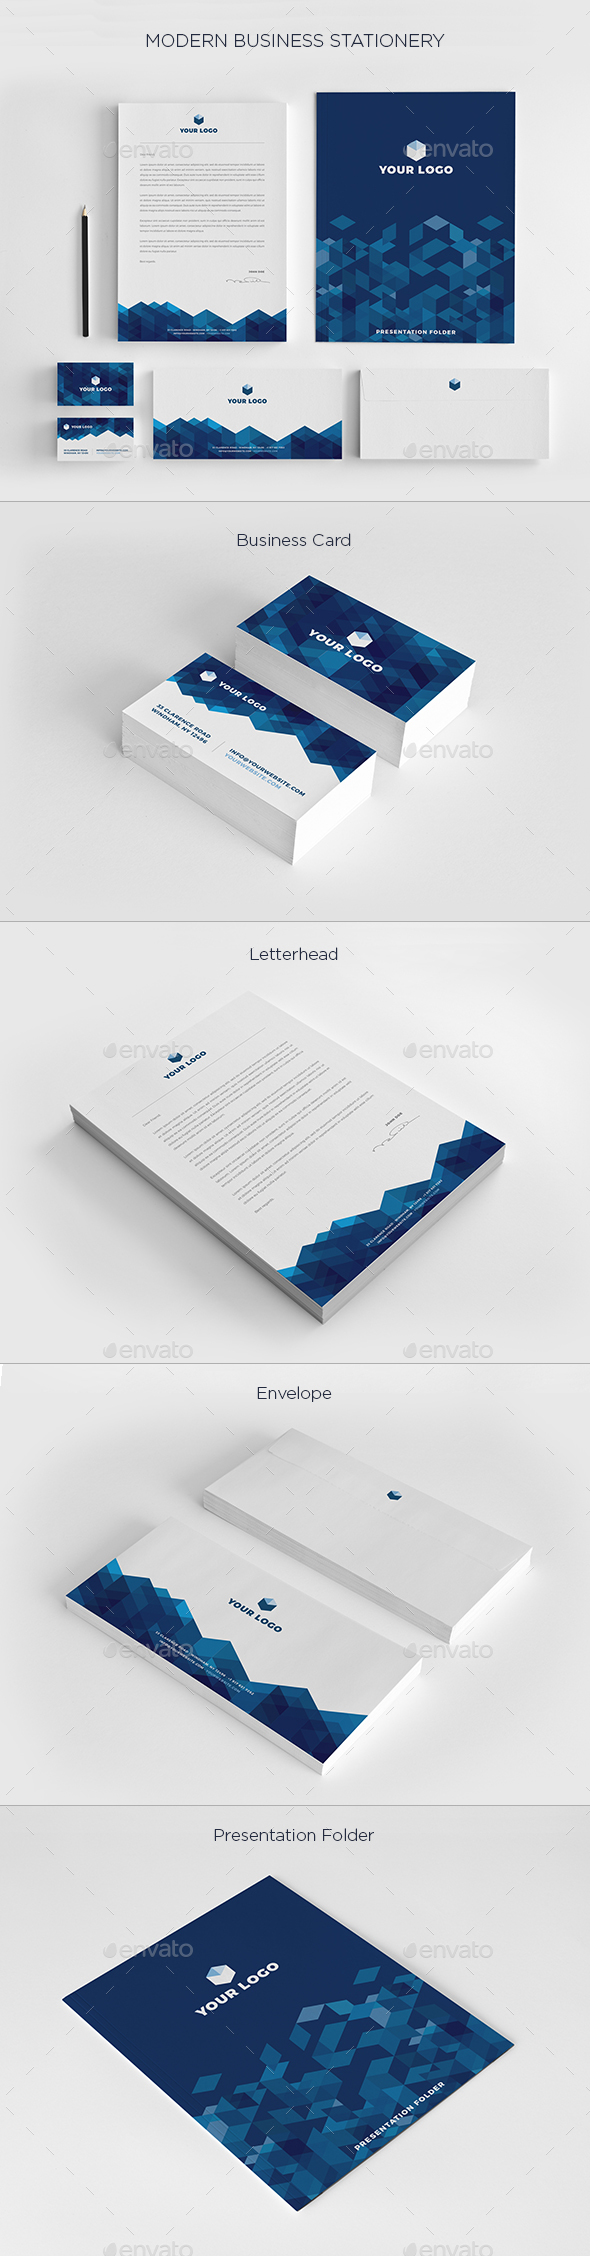 Modern Business Stationery - Stationery Print Templates